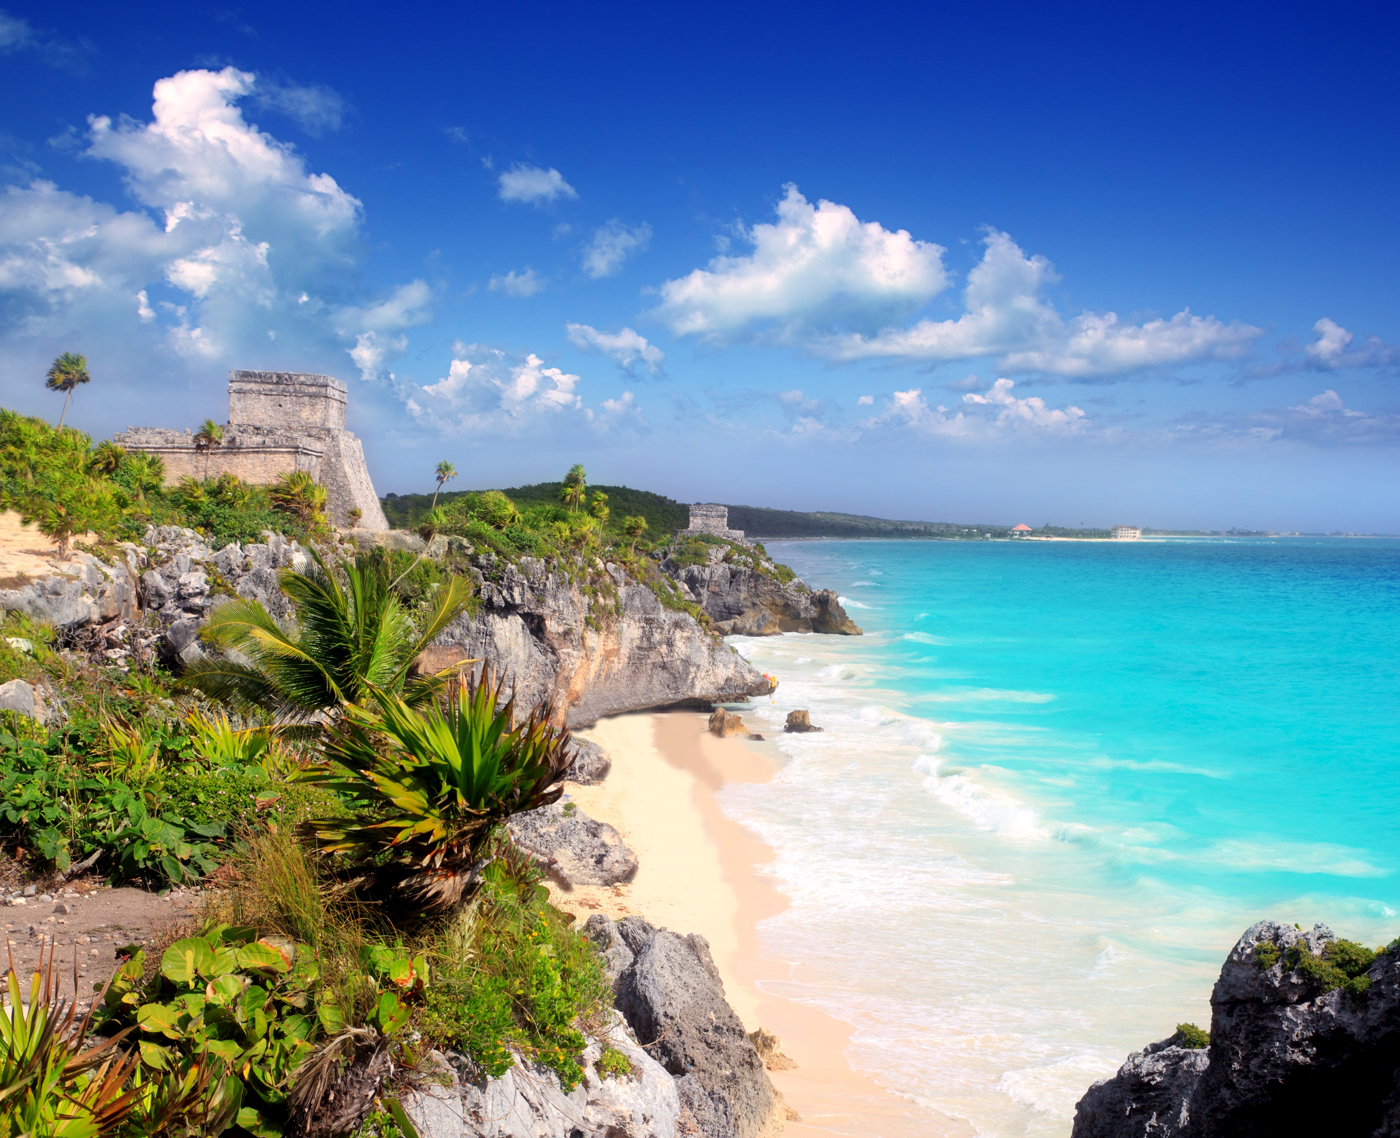 Start Planning Your Winter Getaway Now With These Warm Mexican Beach Vacations